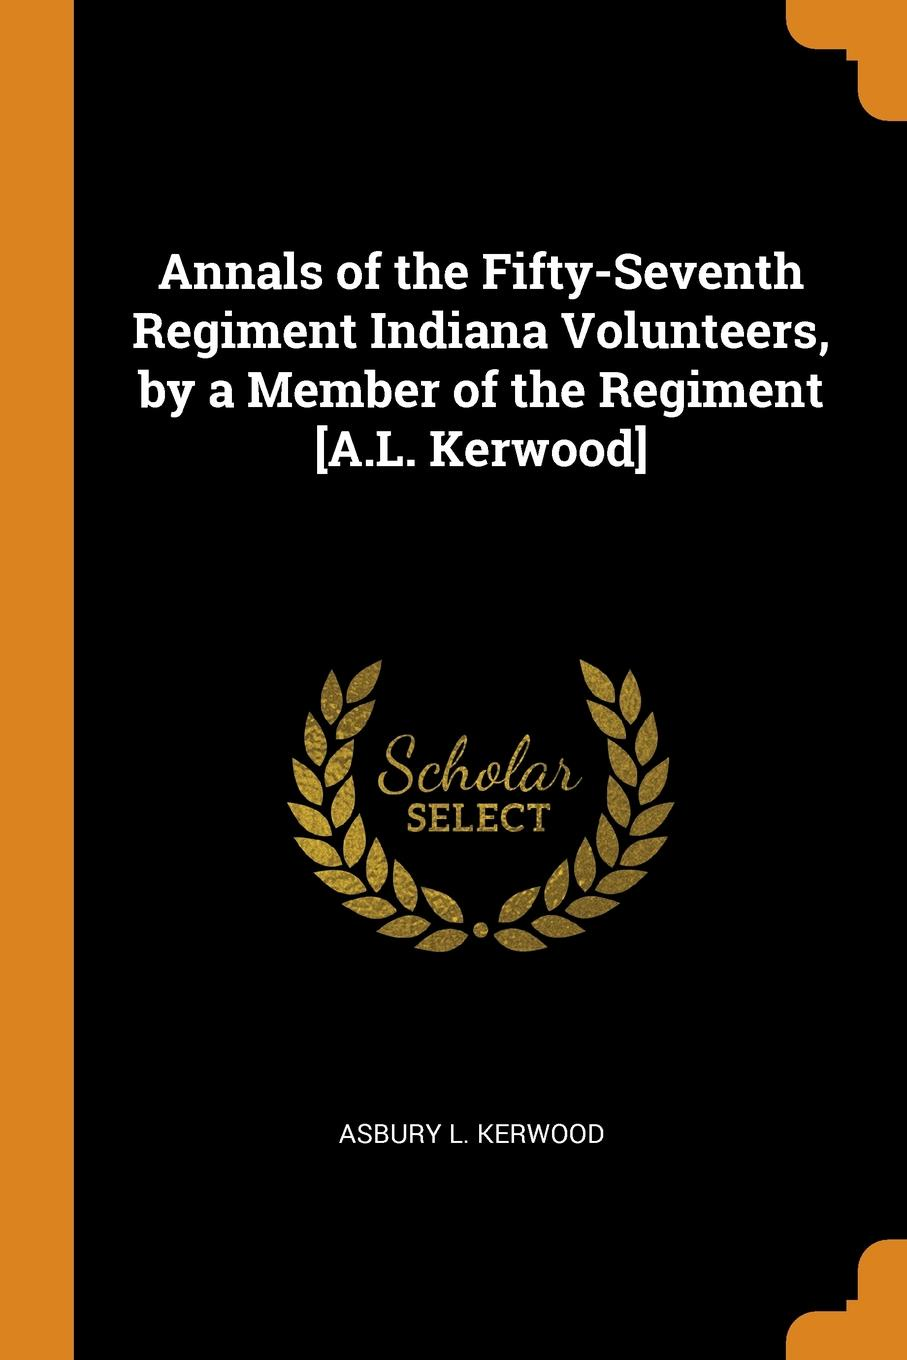 Annals of the Fifty-Seventh Regiment Indiana Volunteers, by a Member of the Regiment .A.L. Kerwood.